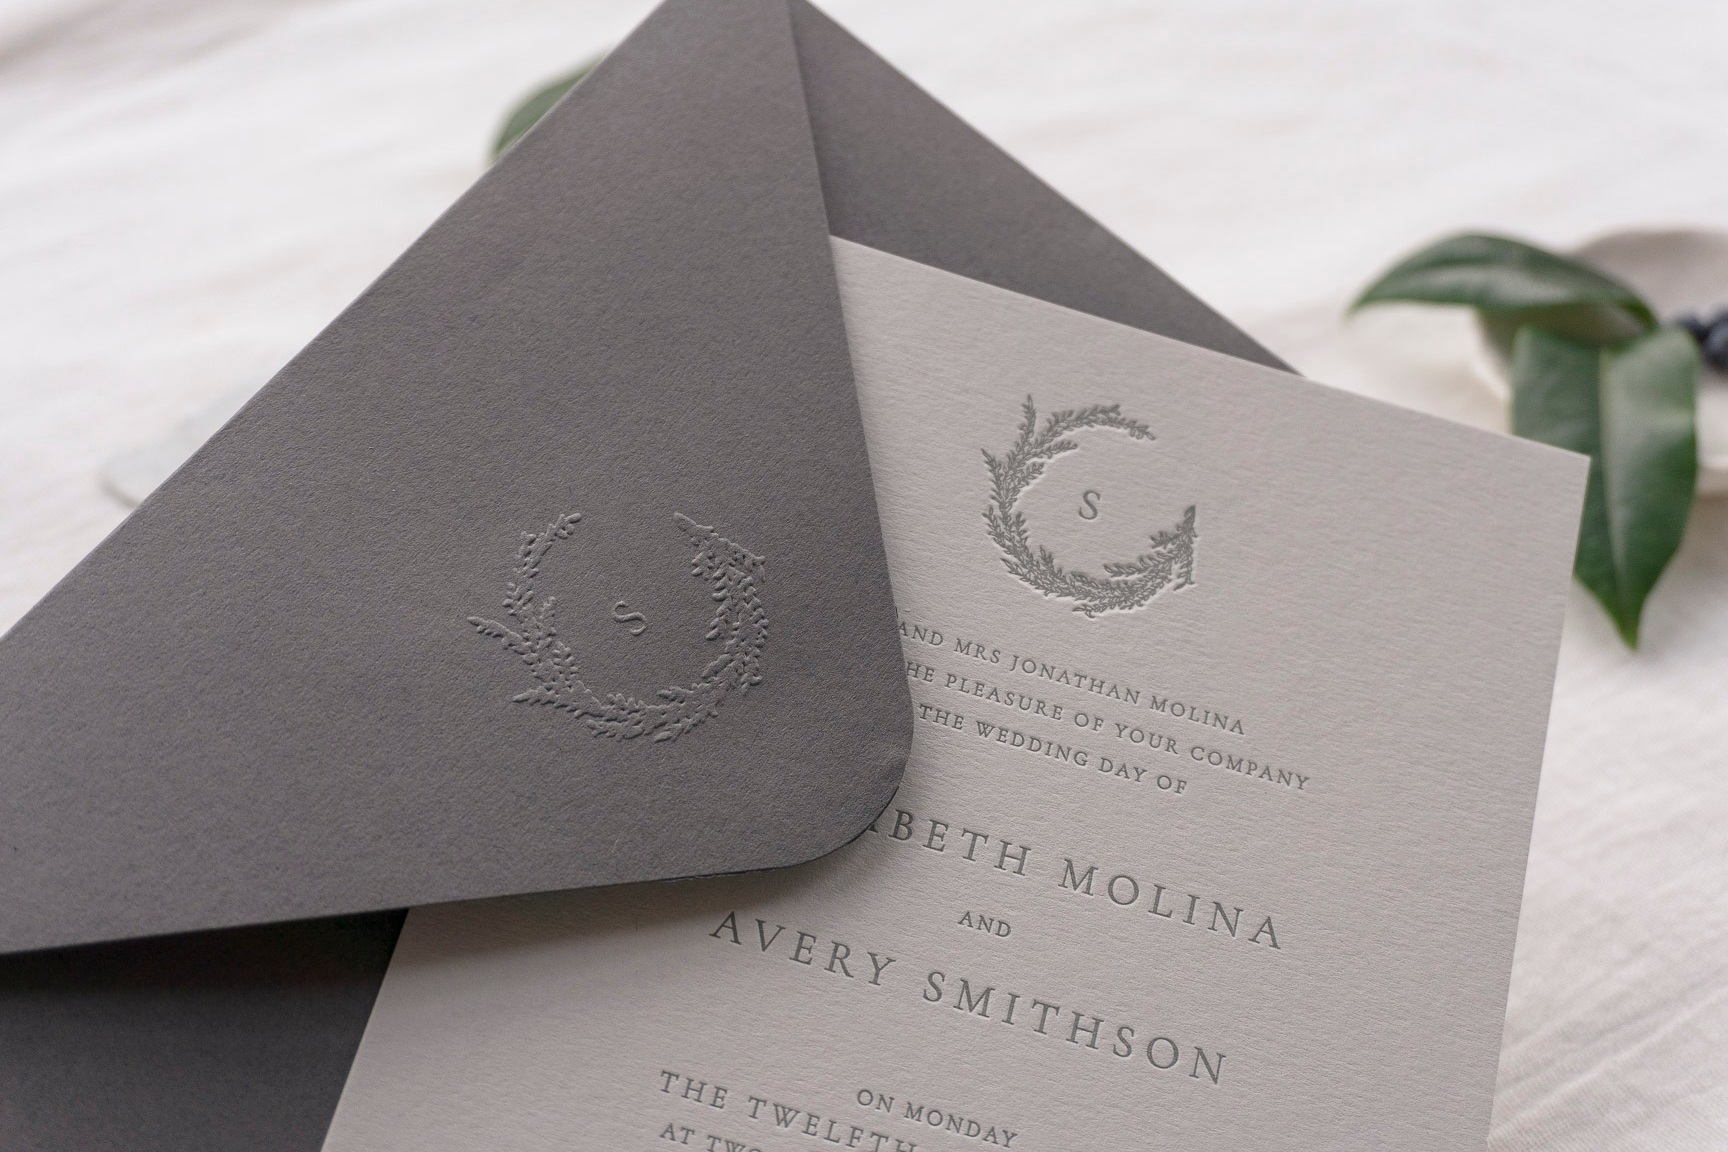 emboss+seal+monogram+envelope+wreath+letterpress+wedding+invitation+uk